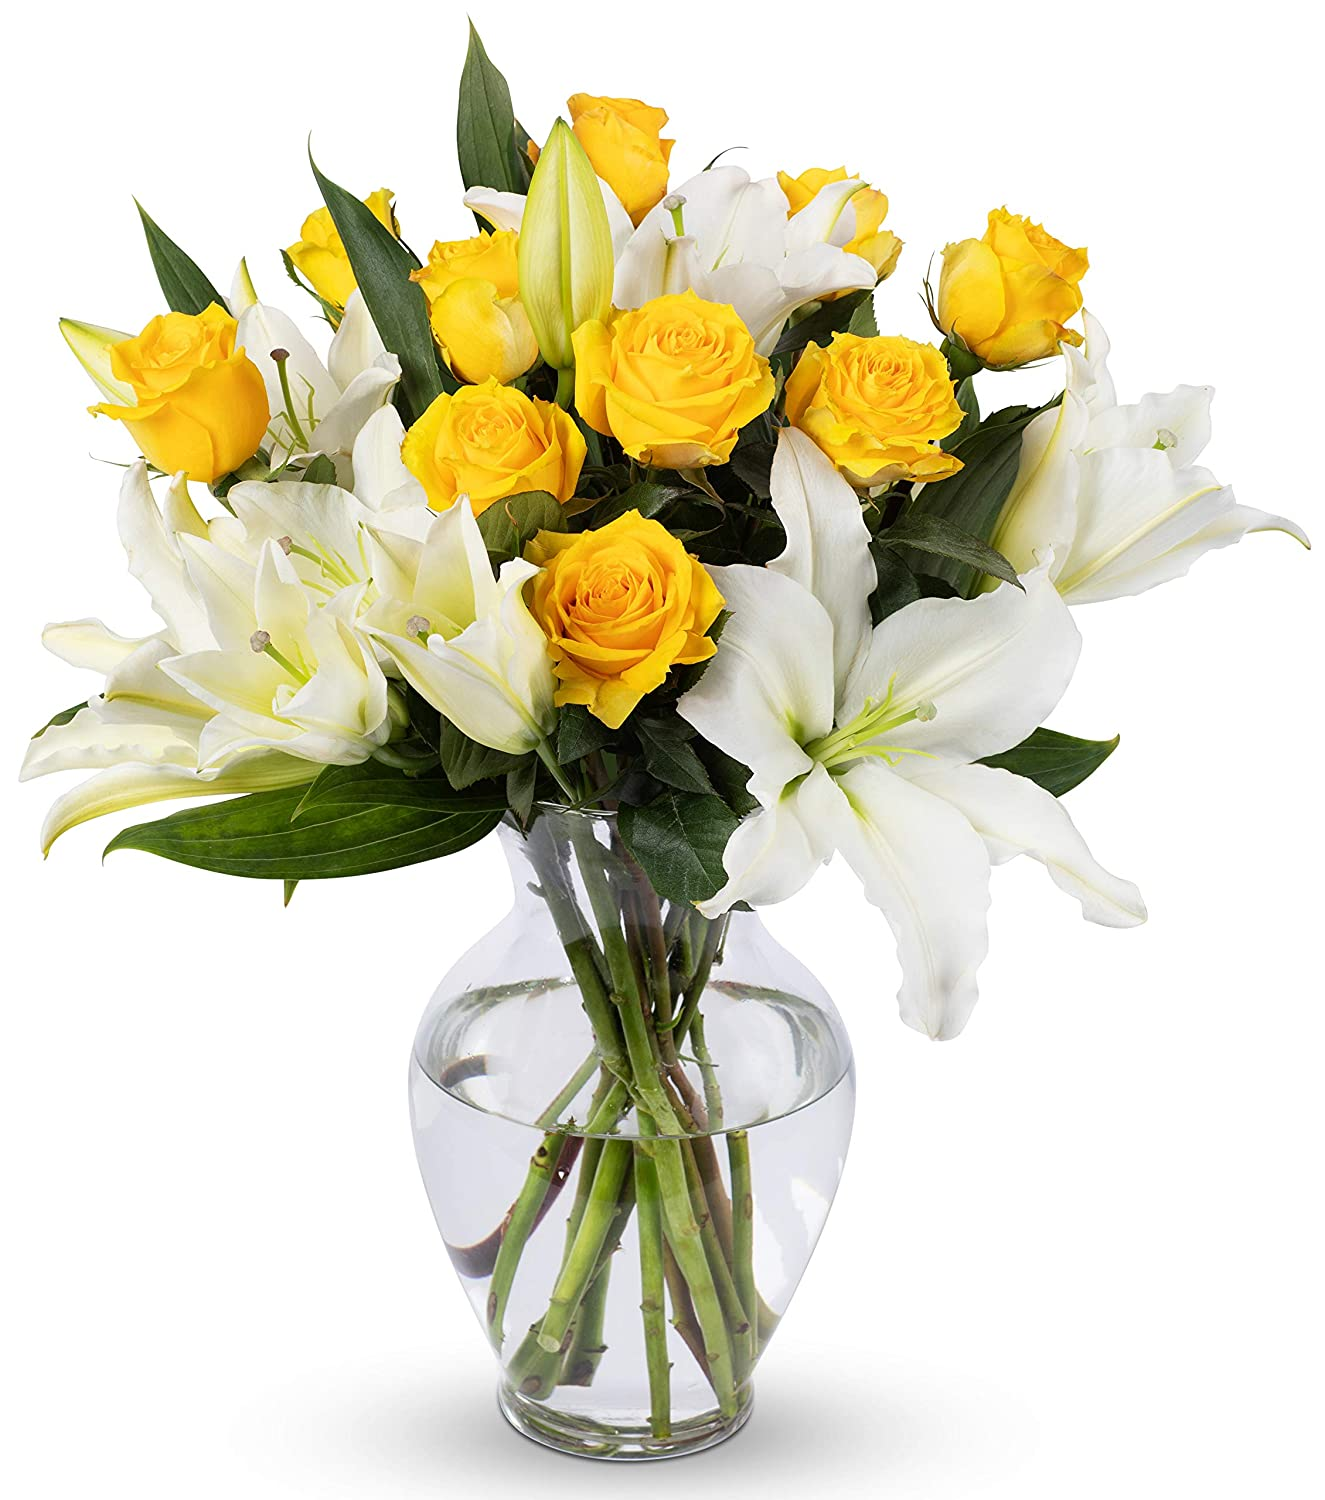 Amazon Com Benchmark Bouquets Yellow Roses And White Oriental